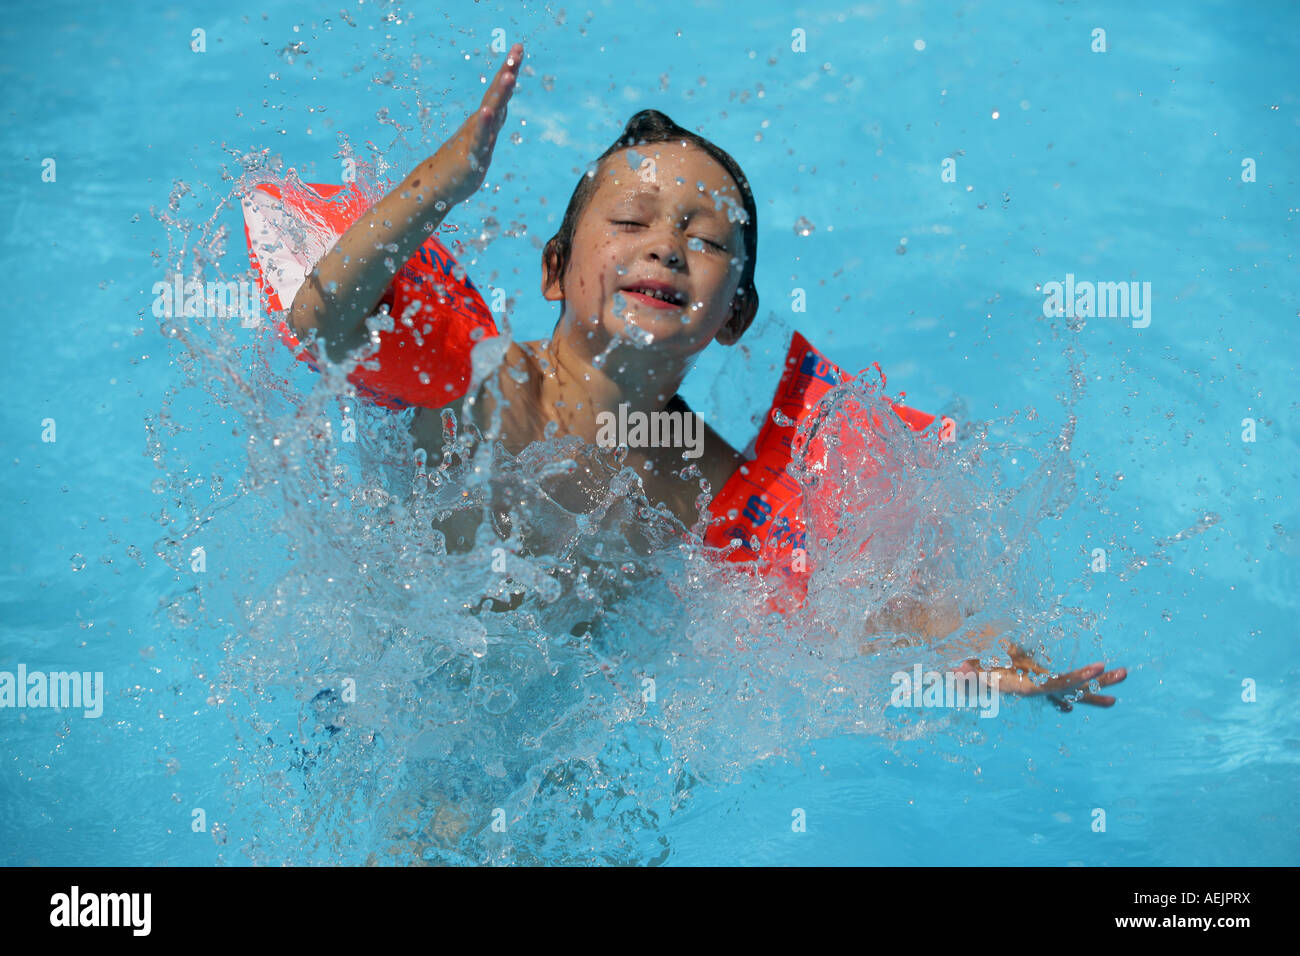 Swimming pool aufblasbar  Young child with water wings in a pool Stock Photo, Royalty Free ...